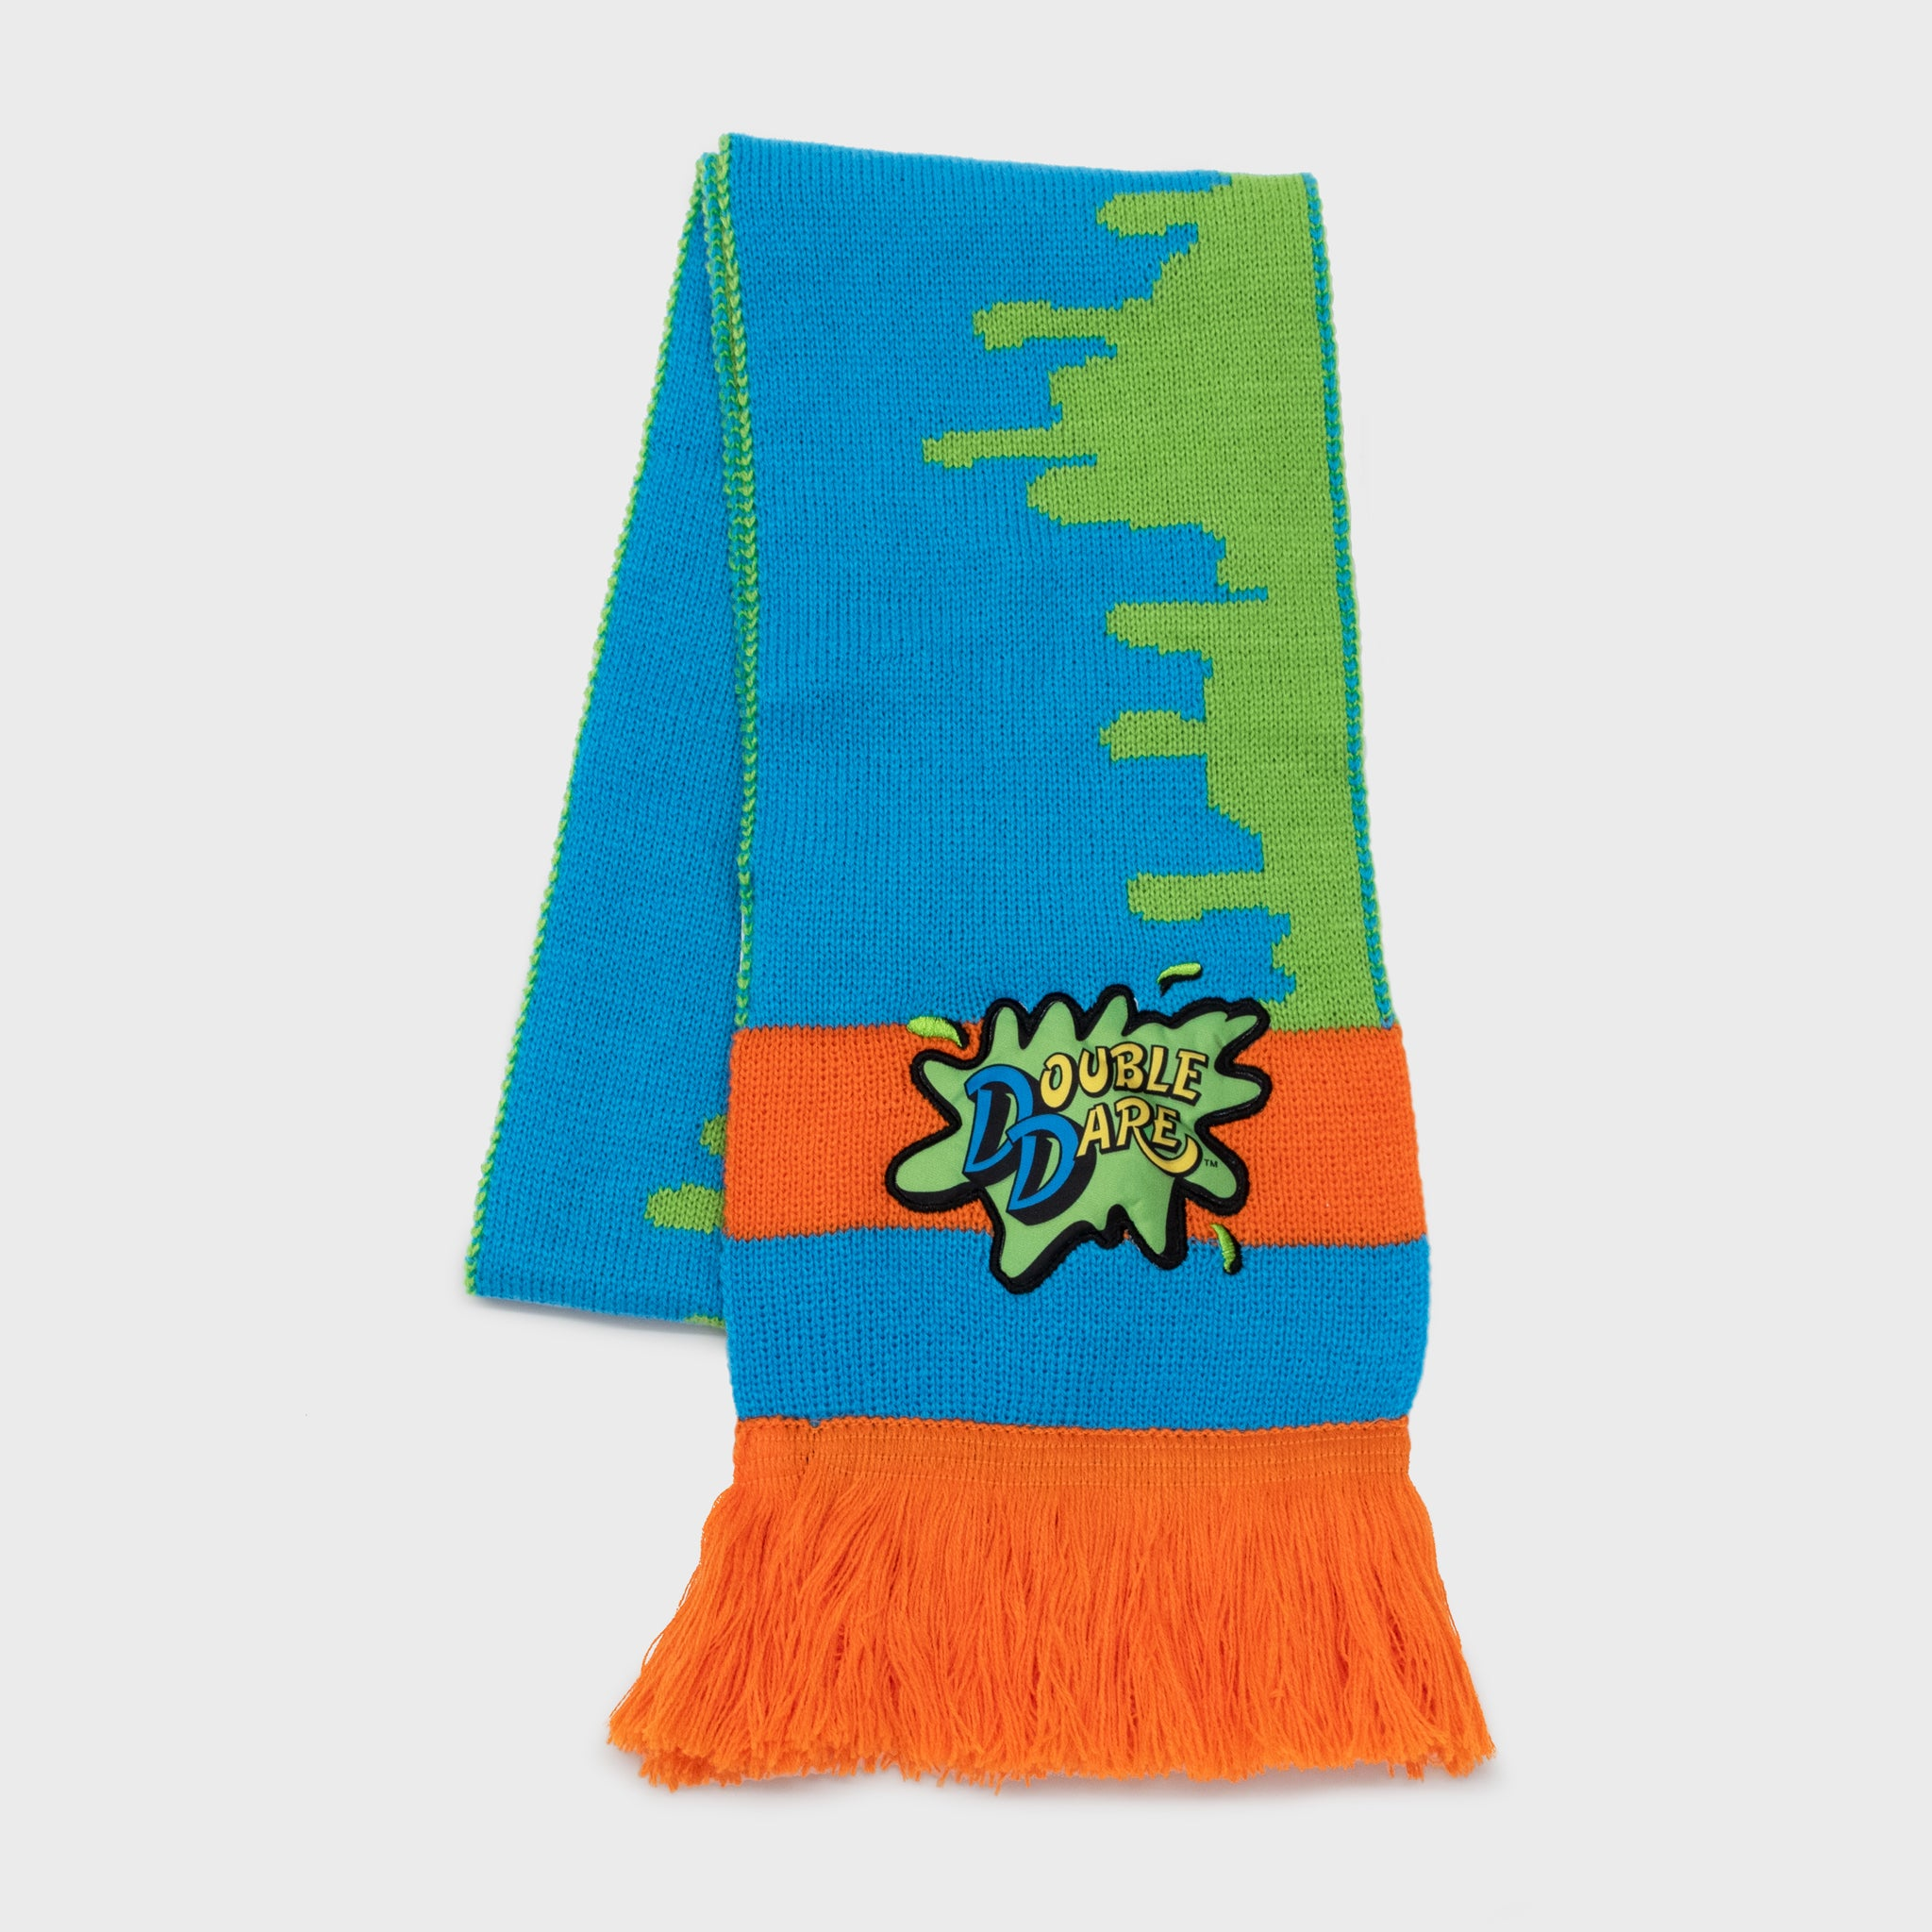 the nick box nickelodeon 90s kids 90s cartoons nostalgia throwback nostalgic classic subscription quarterly exclusive limited edition collectible double dare scarf winter accessory culturefly